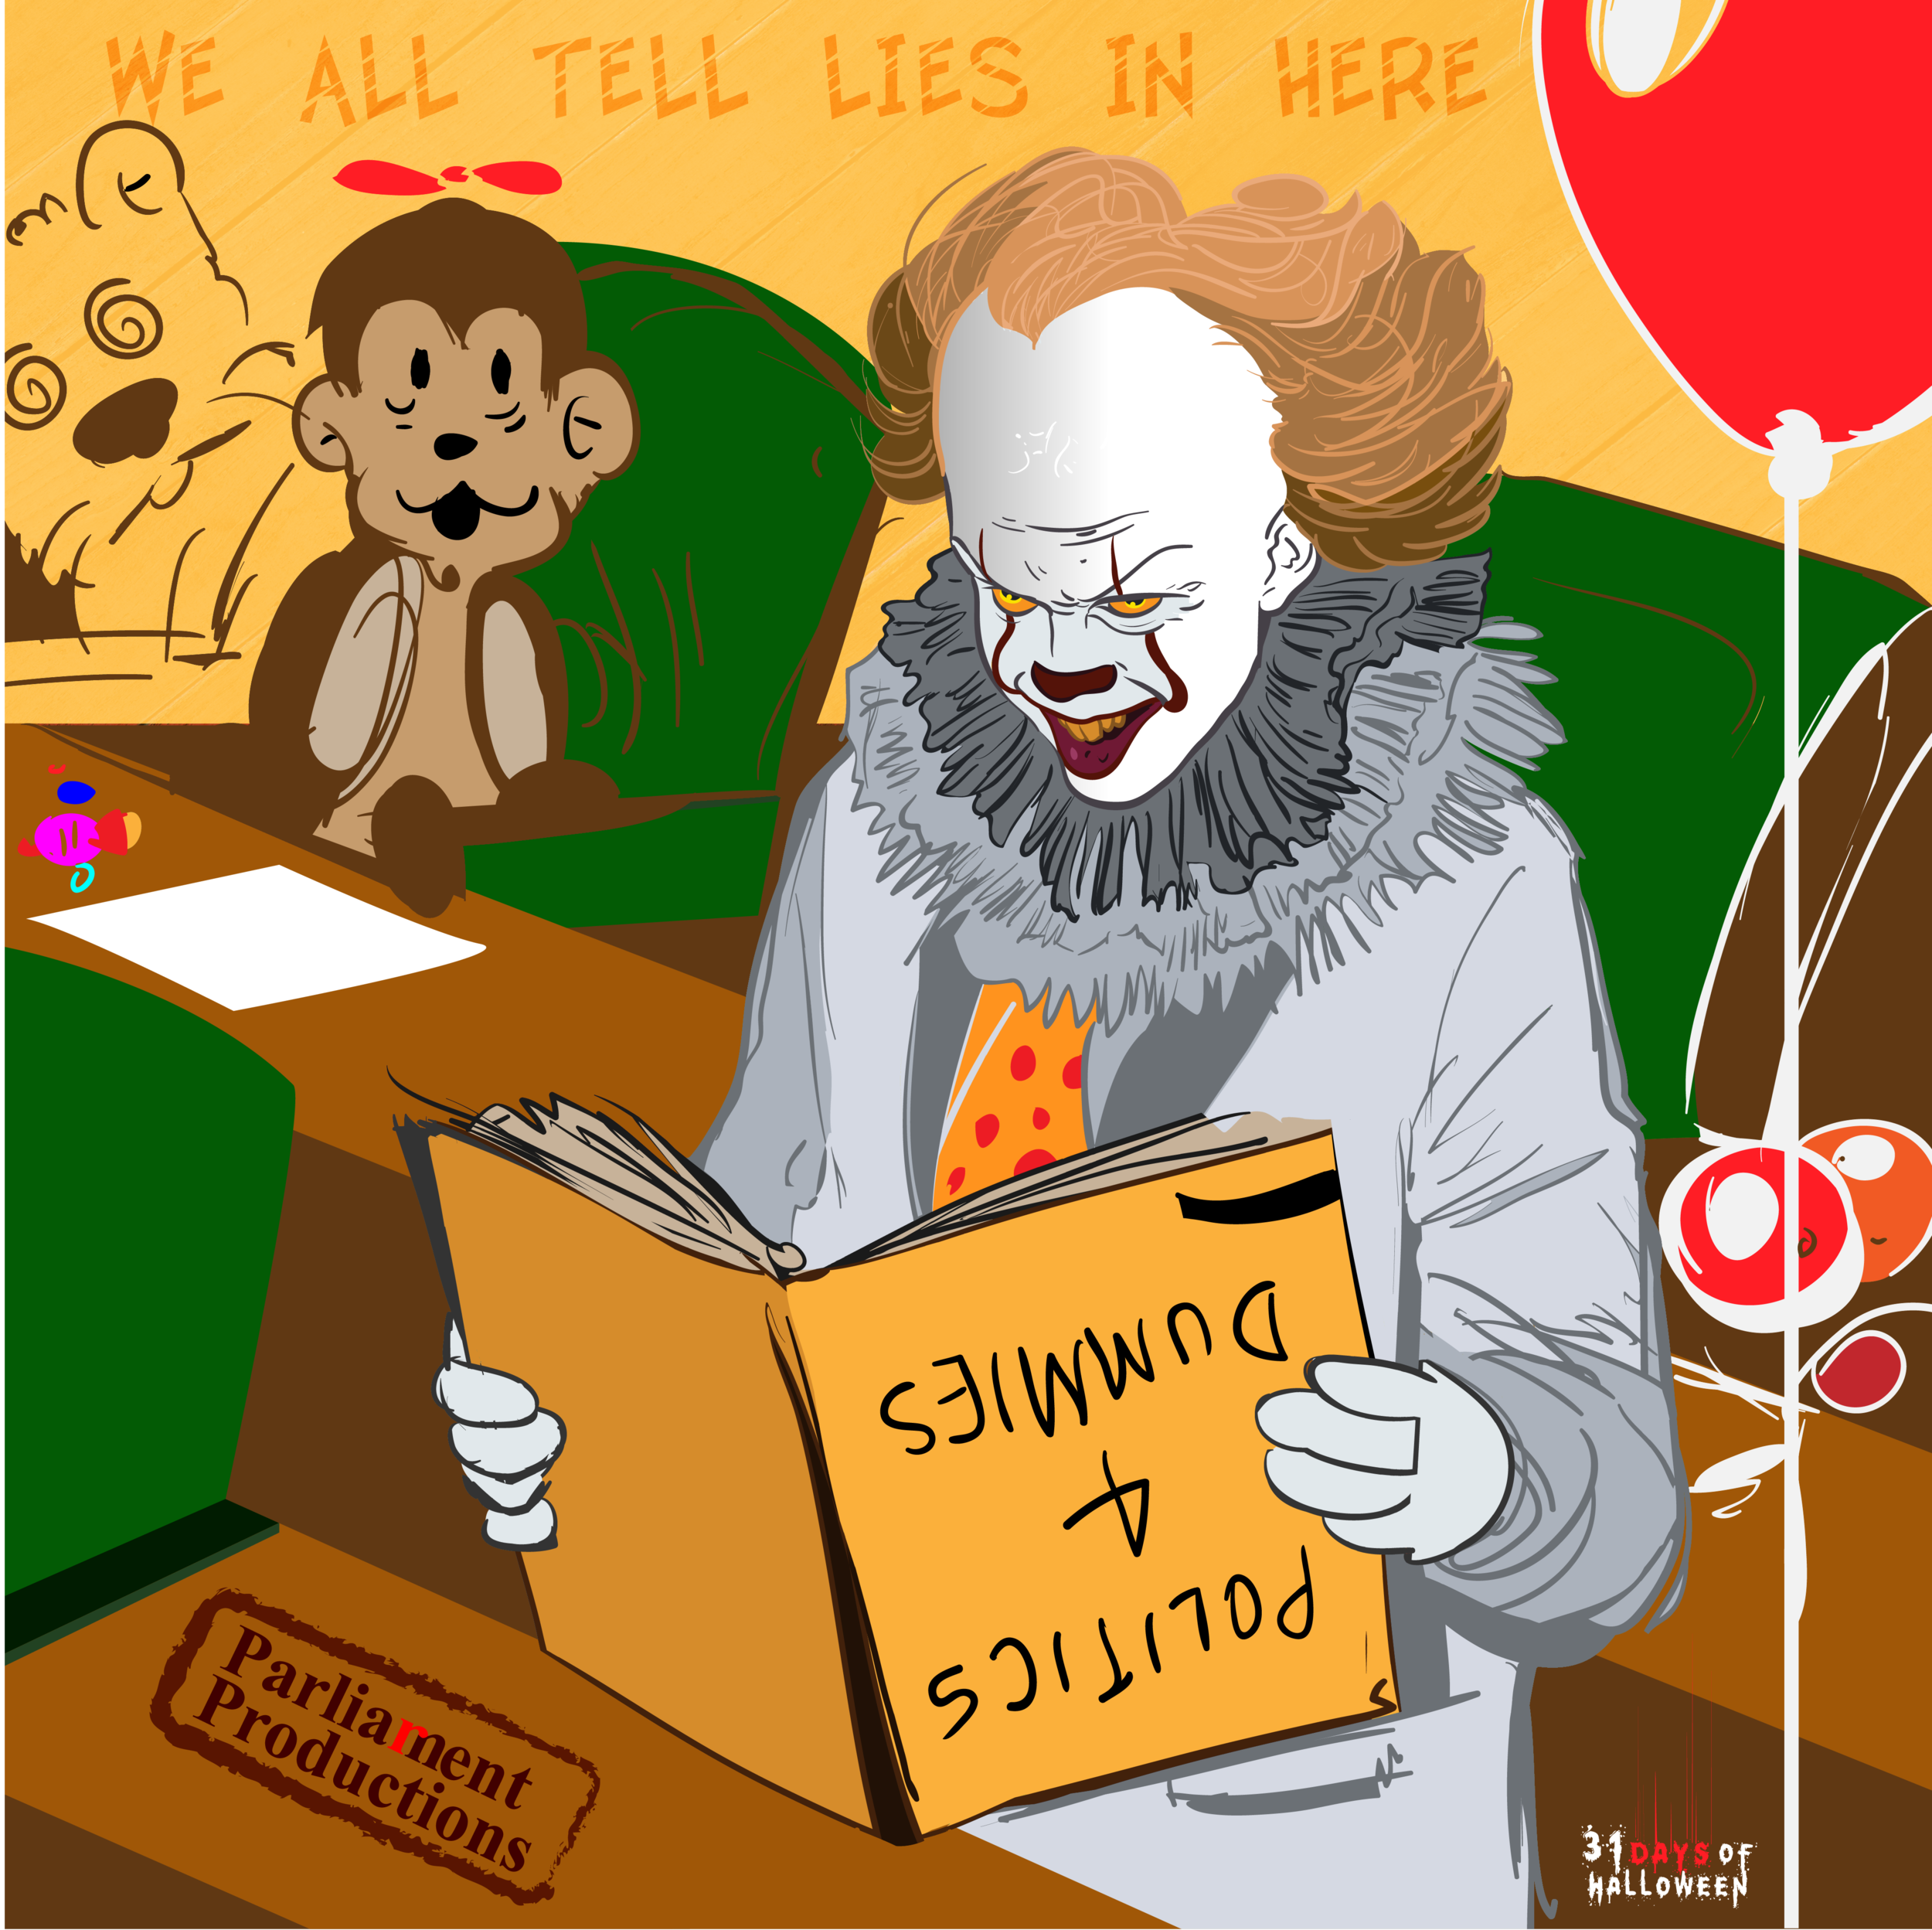 Day 17 - Pennywise the Dancing Clown (IT)